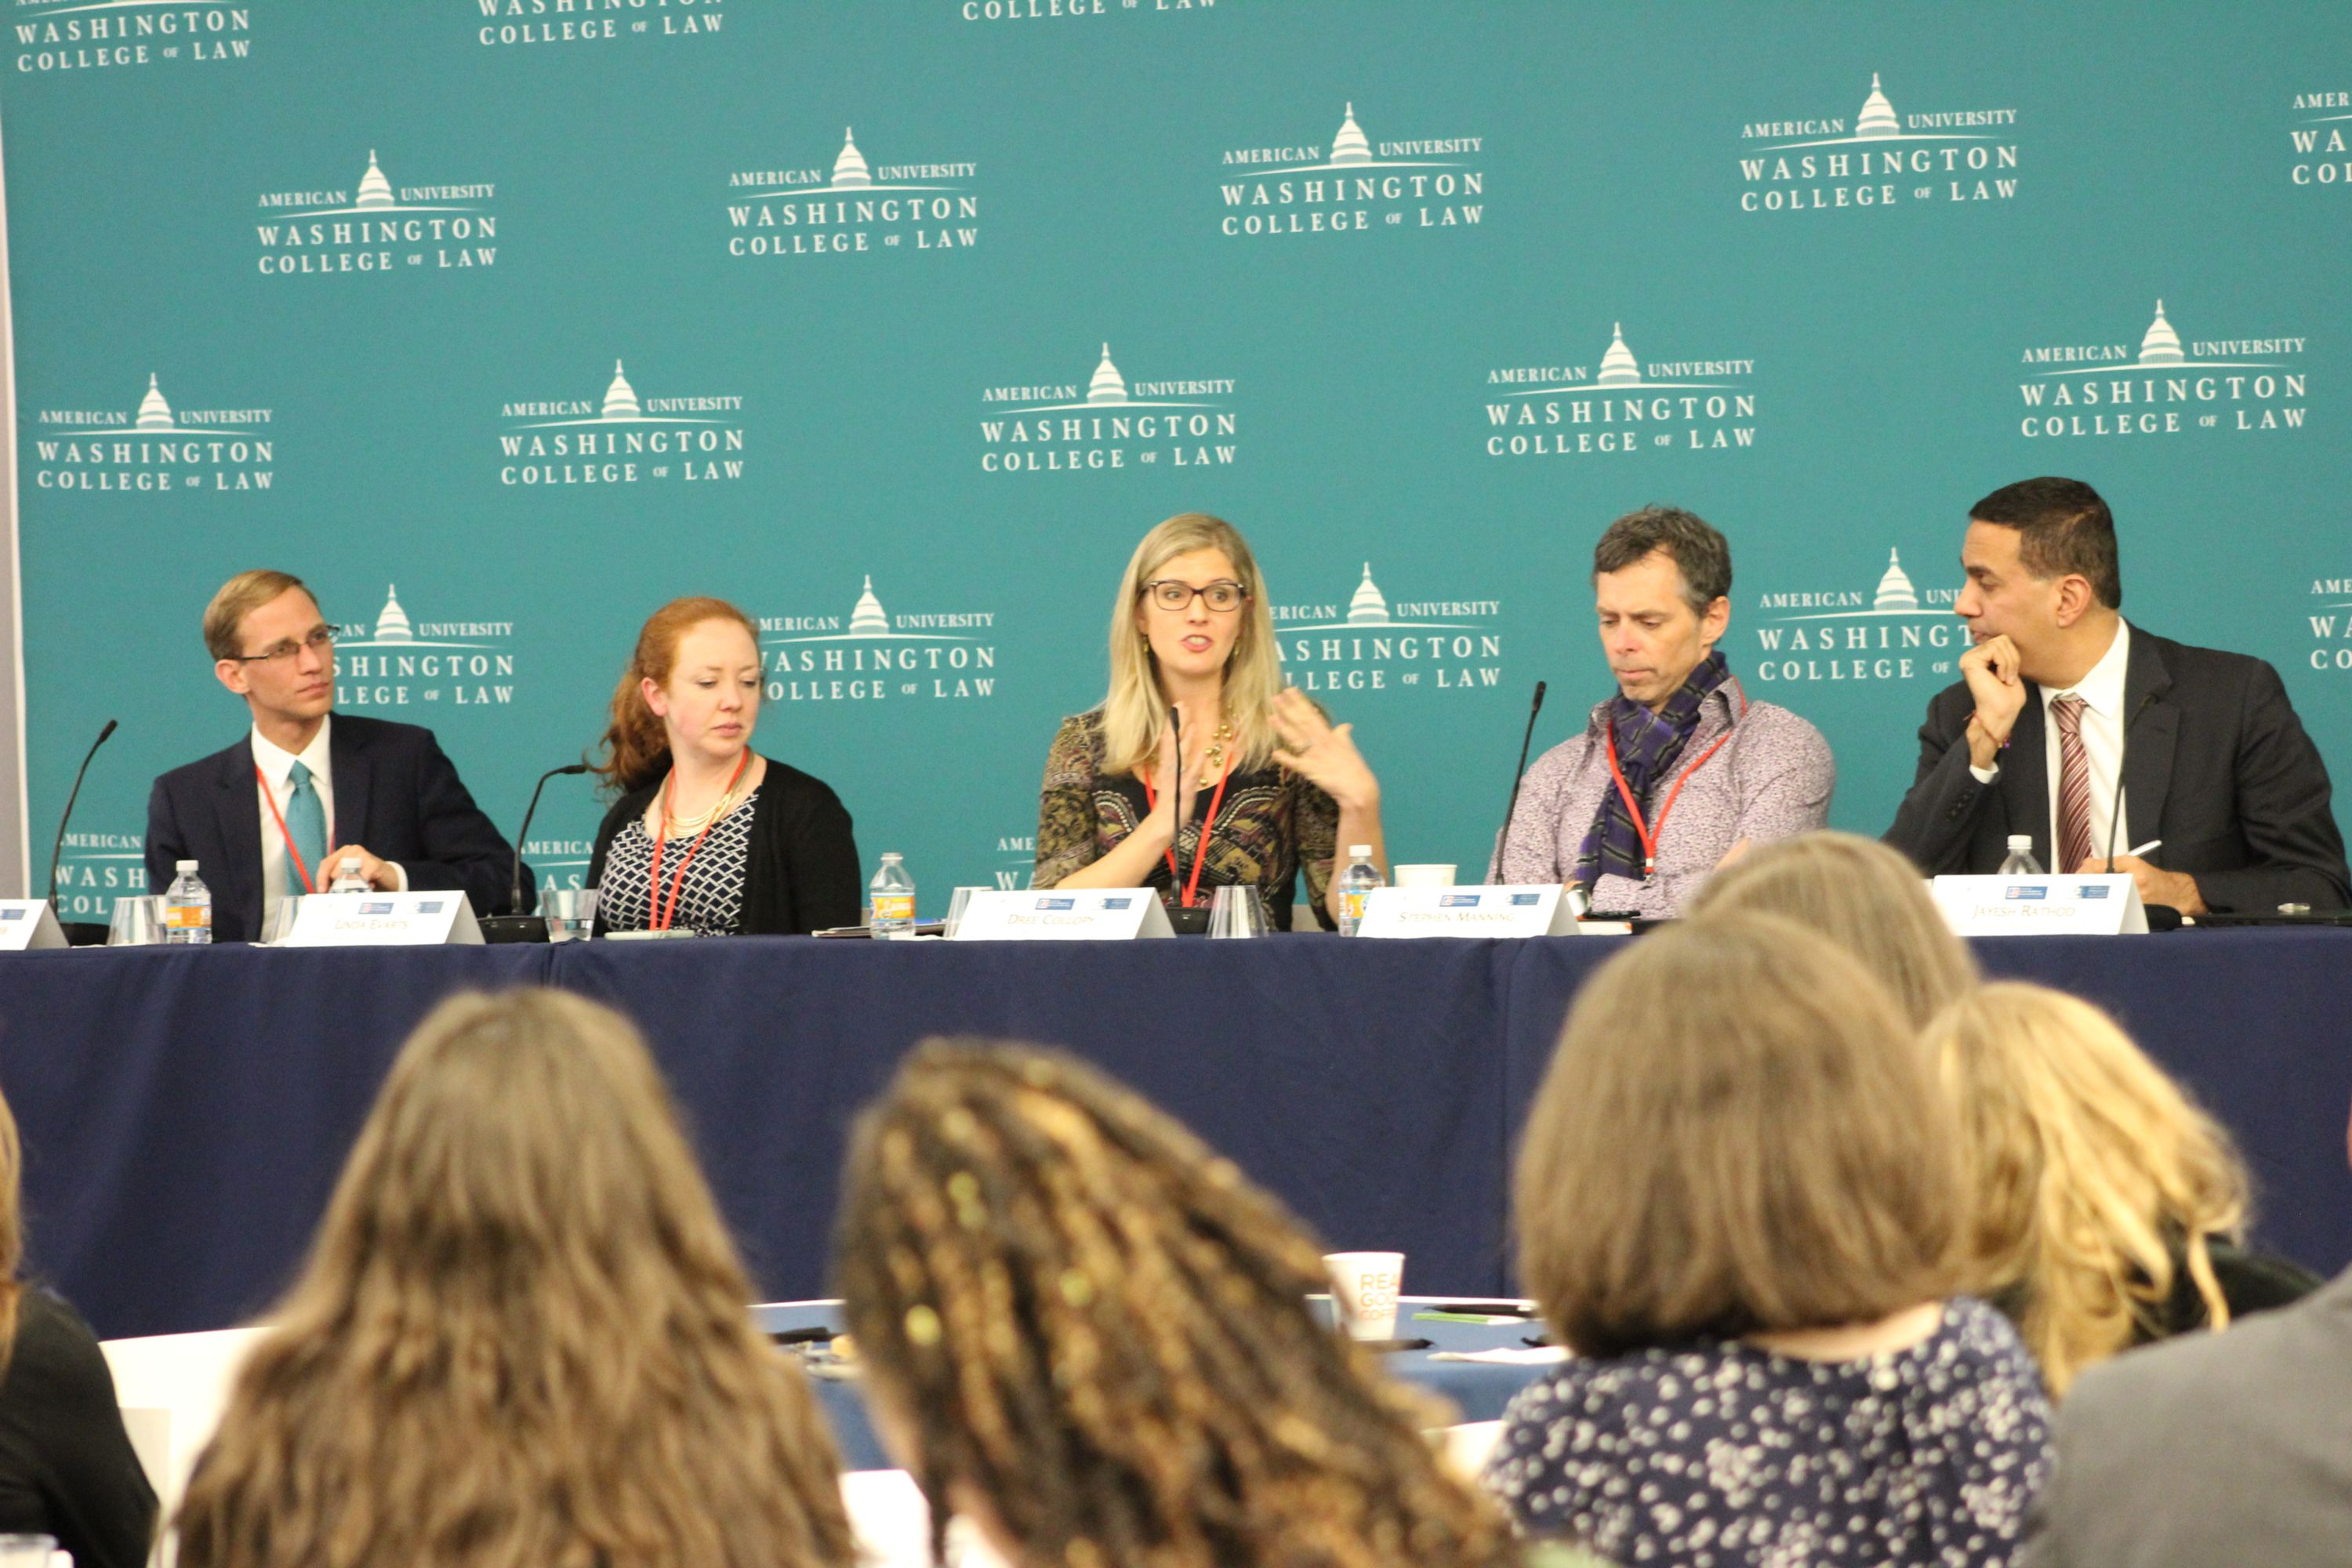 Left to right: Dennis Stinchcomb, AU Center for Latin American & Latino Studies; Linda Evarts, International Refugee Project; Dree Collopy, Benach Collopy LLP; Stephen Manning, Innovation Law Lab; Jayesh Rathod, AUWCL Immigrant Justice Clinic.